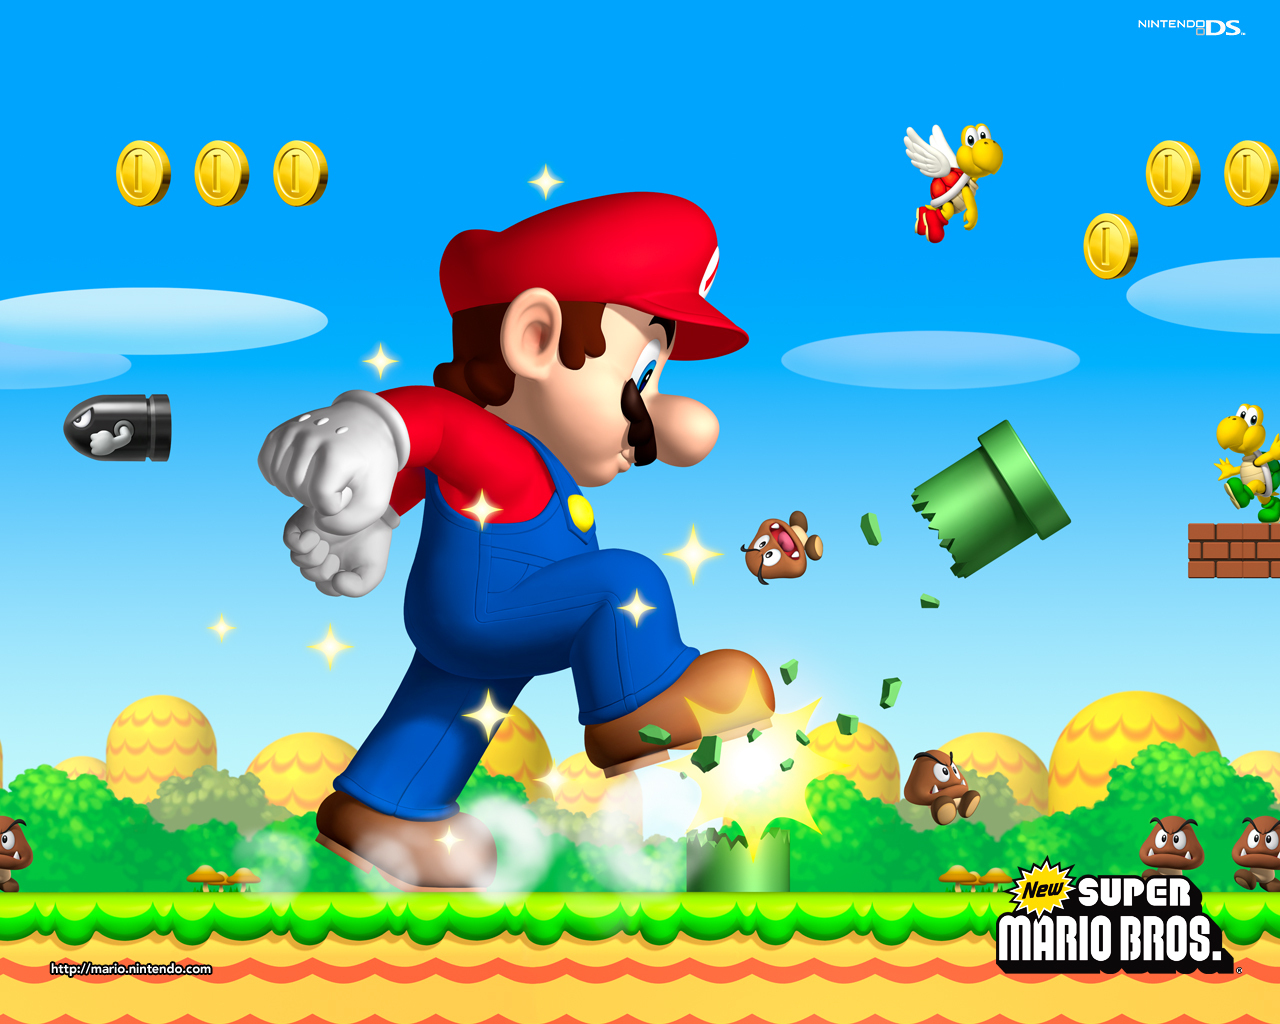 New Super Mario Brothers Wallpaper - Super Mario Bros. Wallpaper (5314181) - Fanpop